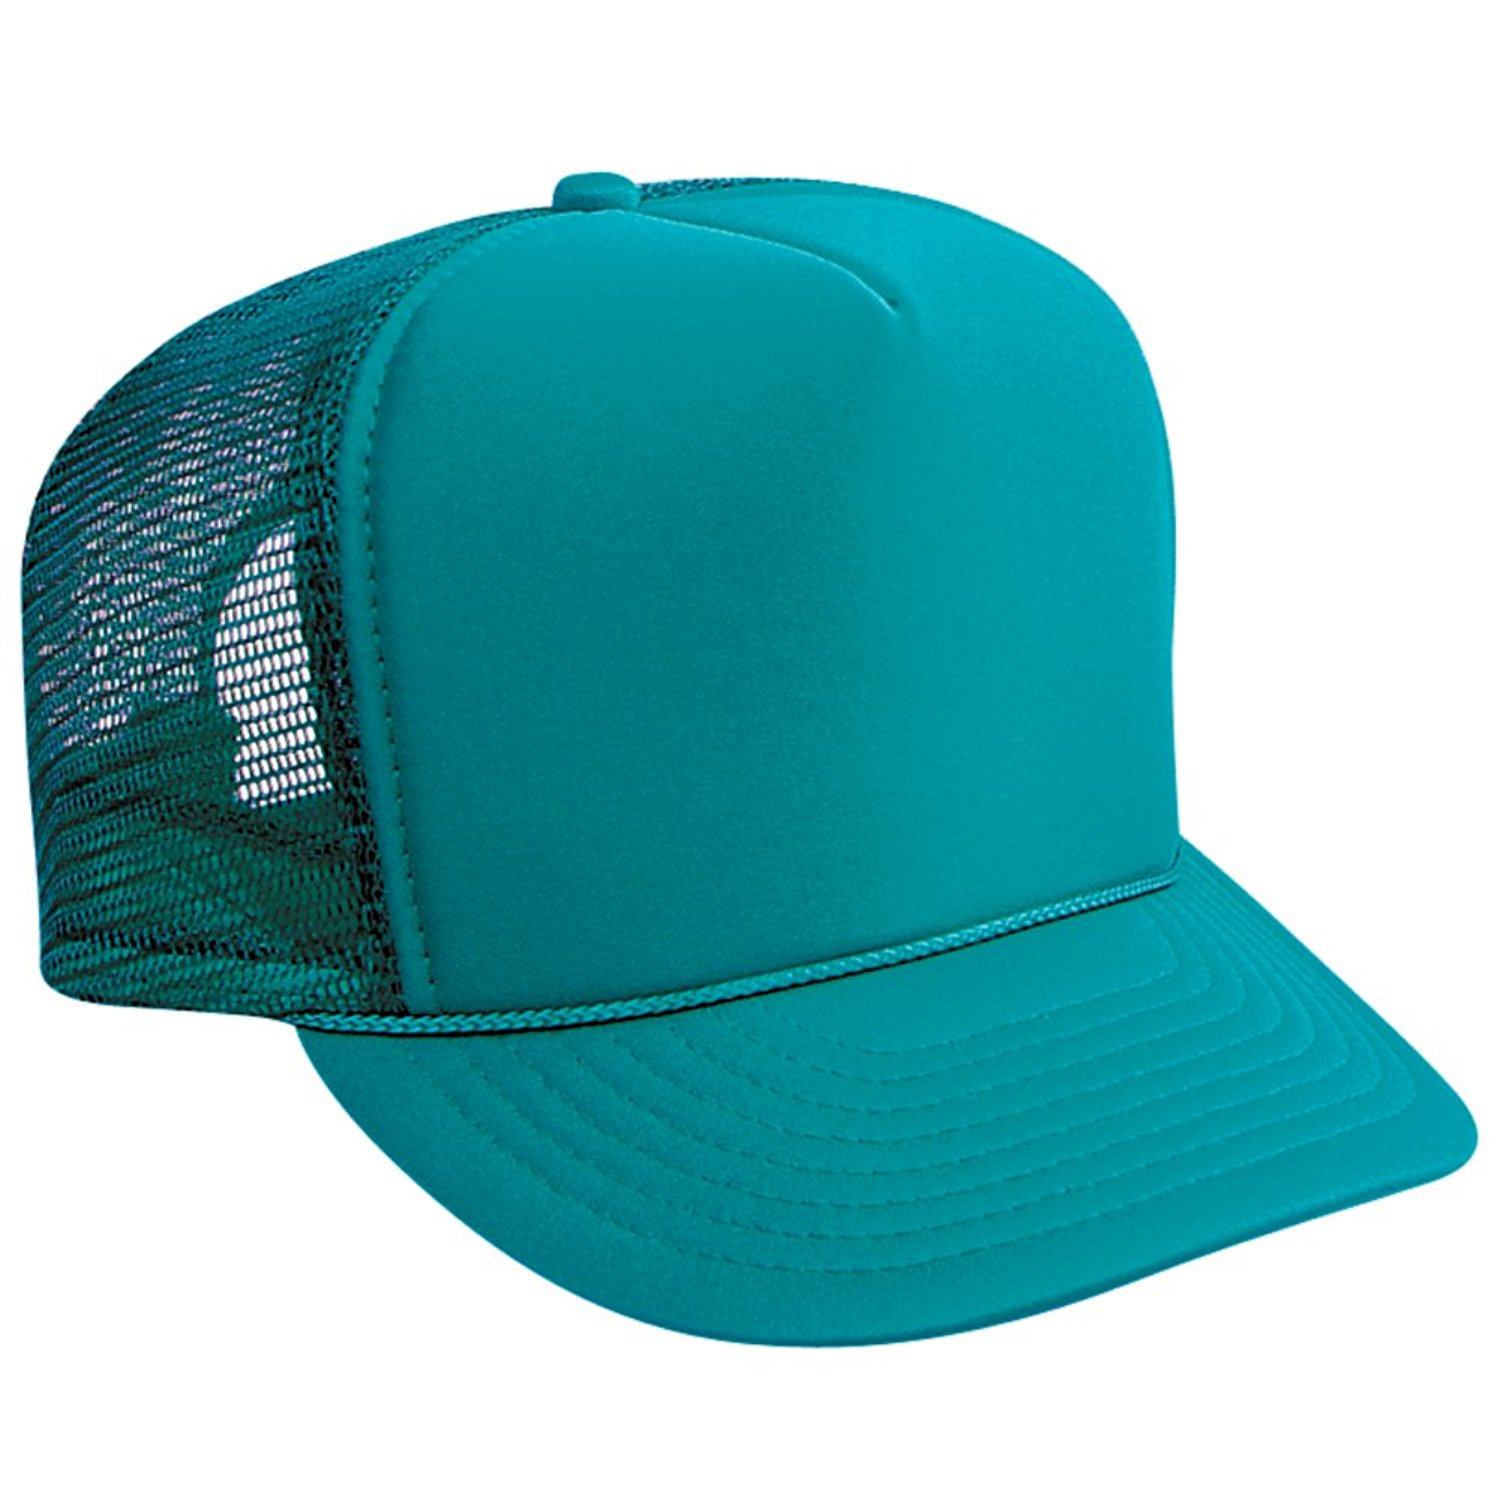 284faf51dde Get Quotations · Wholesale 12 Hats Mesh Trucker Hats (26 Colors)